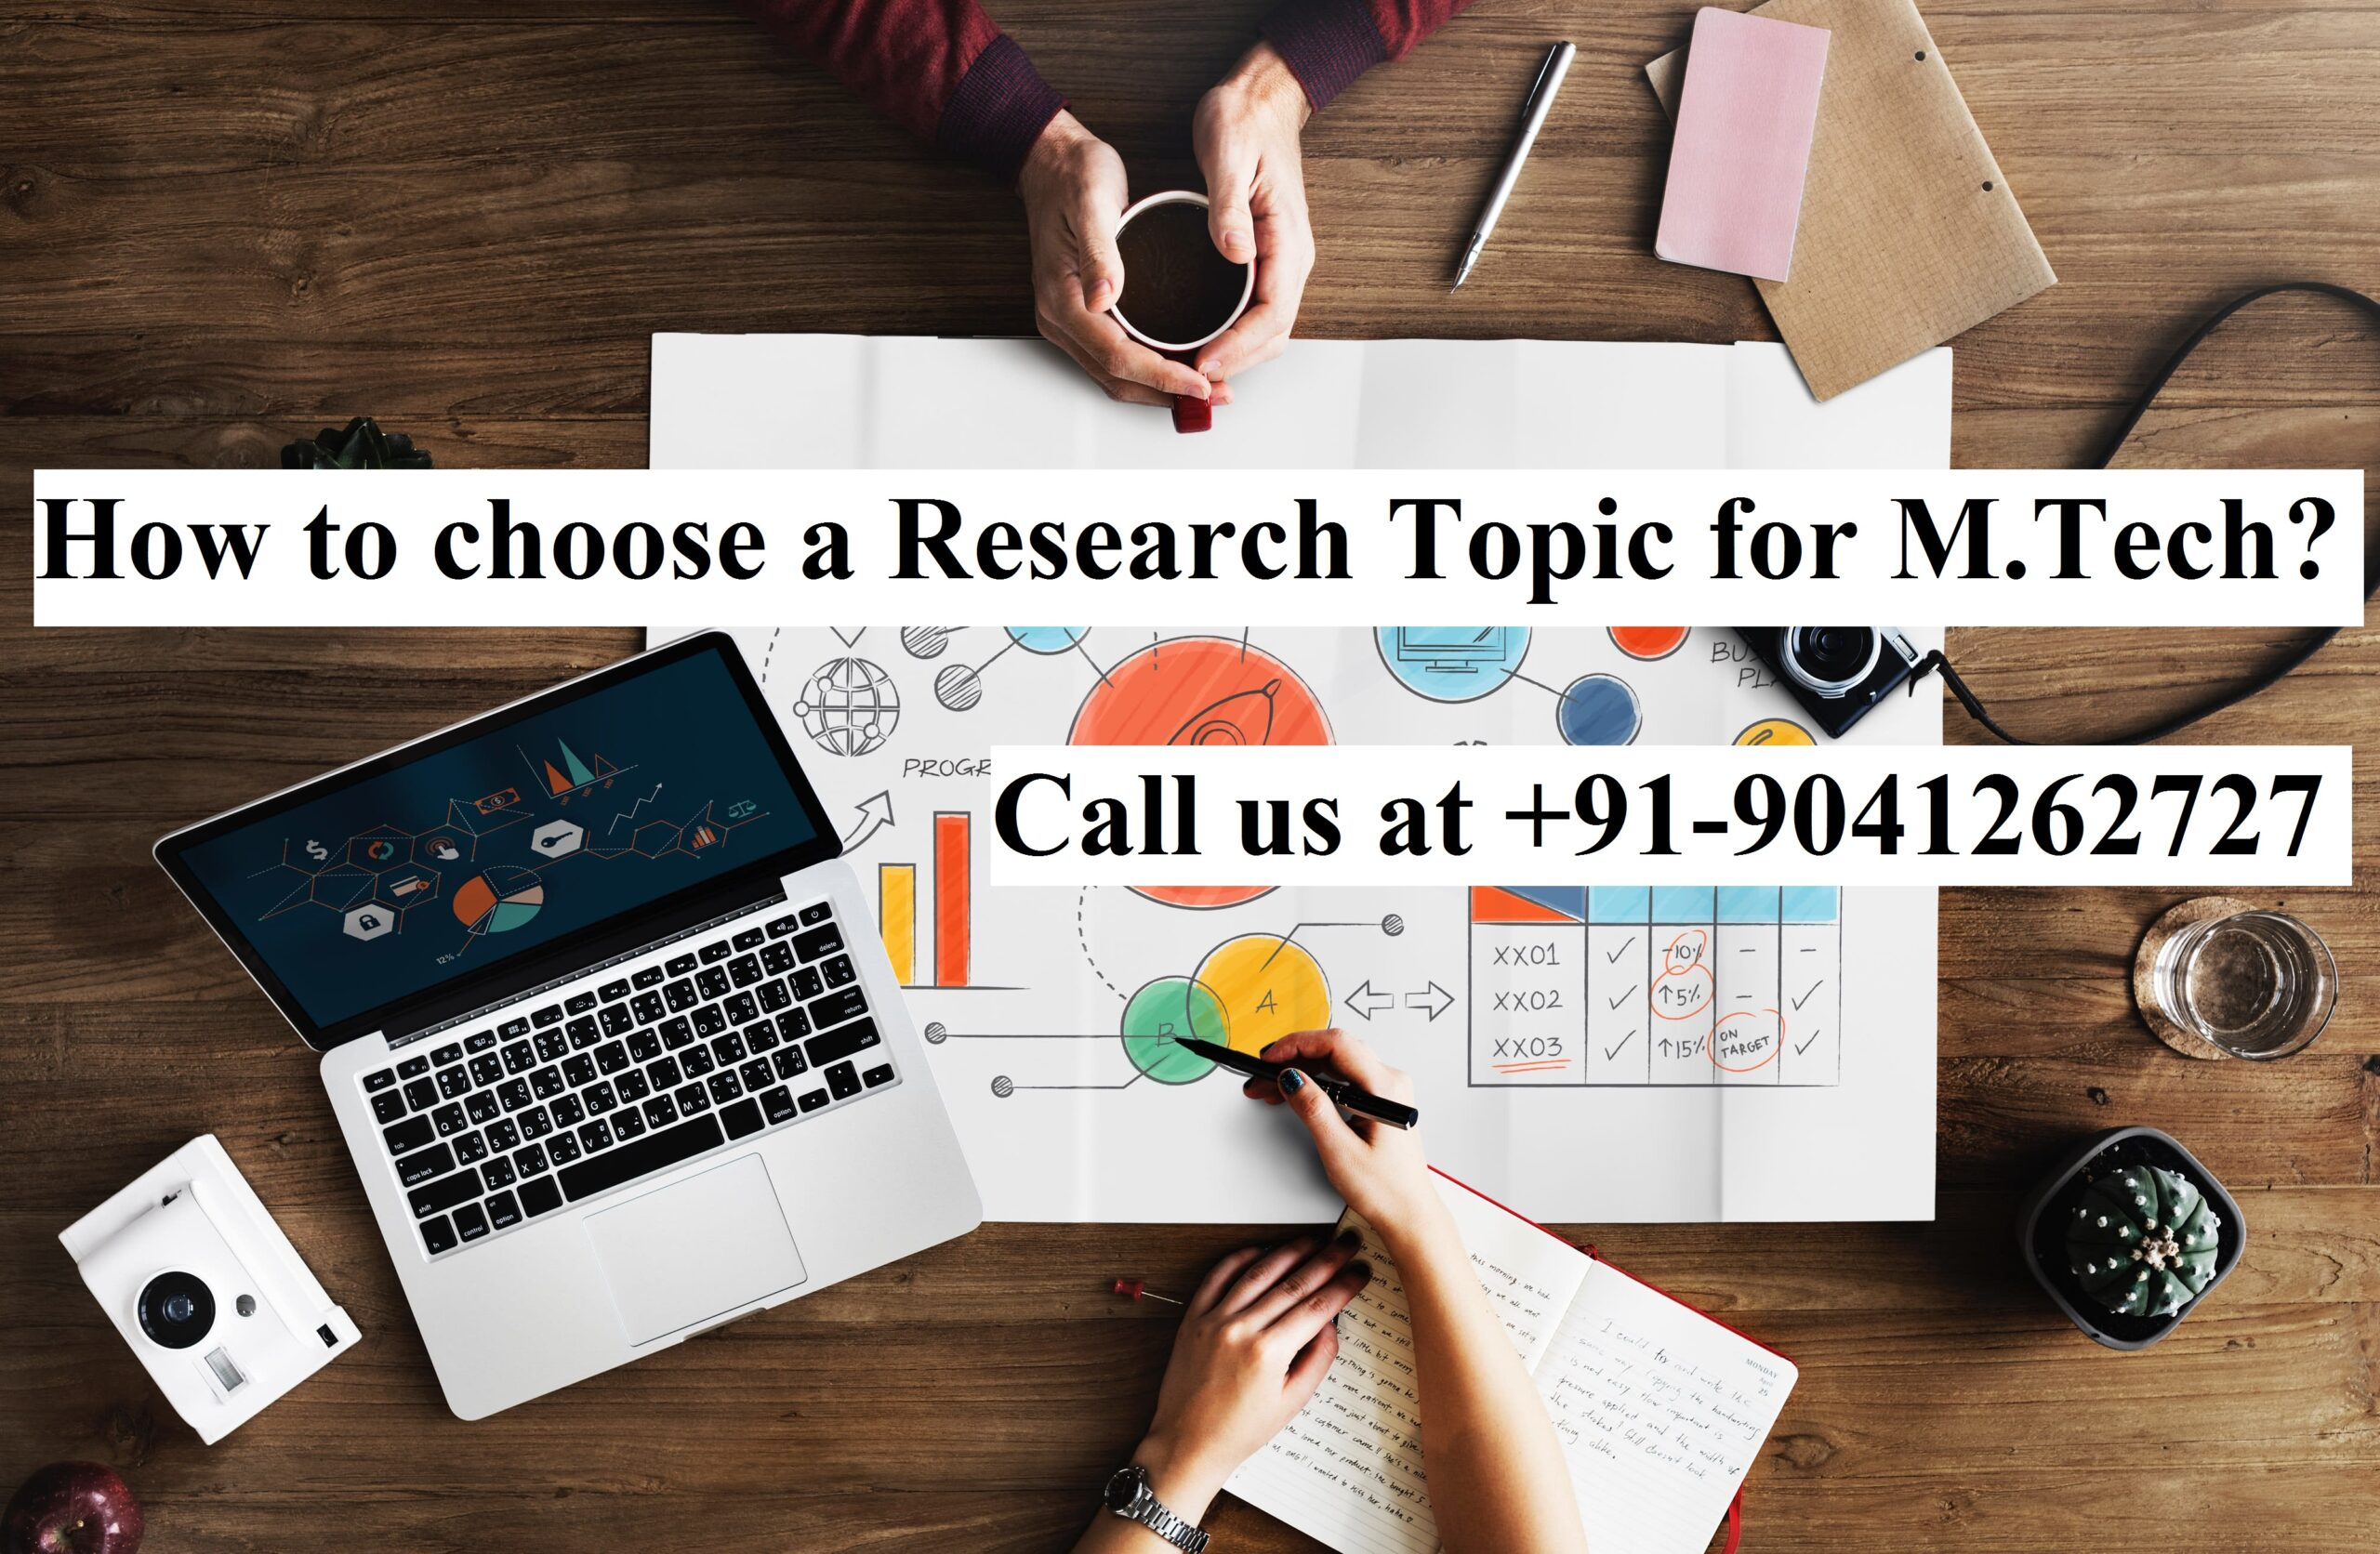 How to choose a research topic for M.Tech?